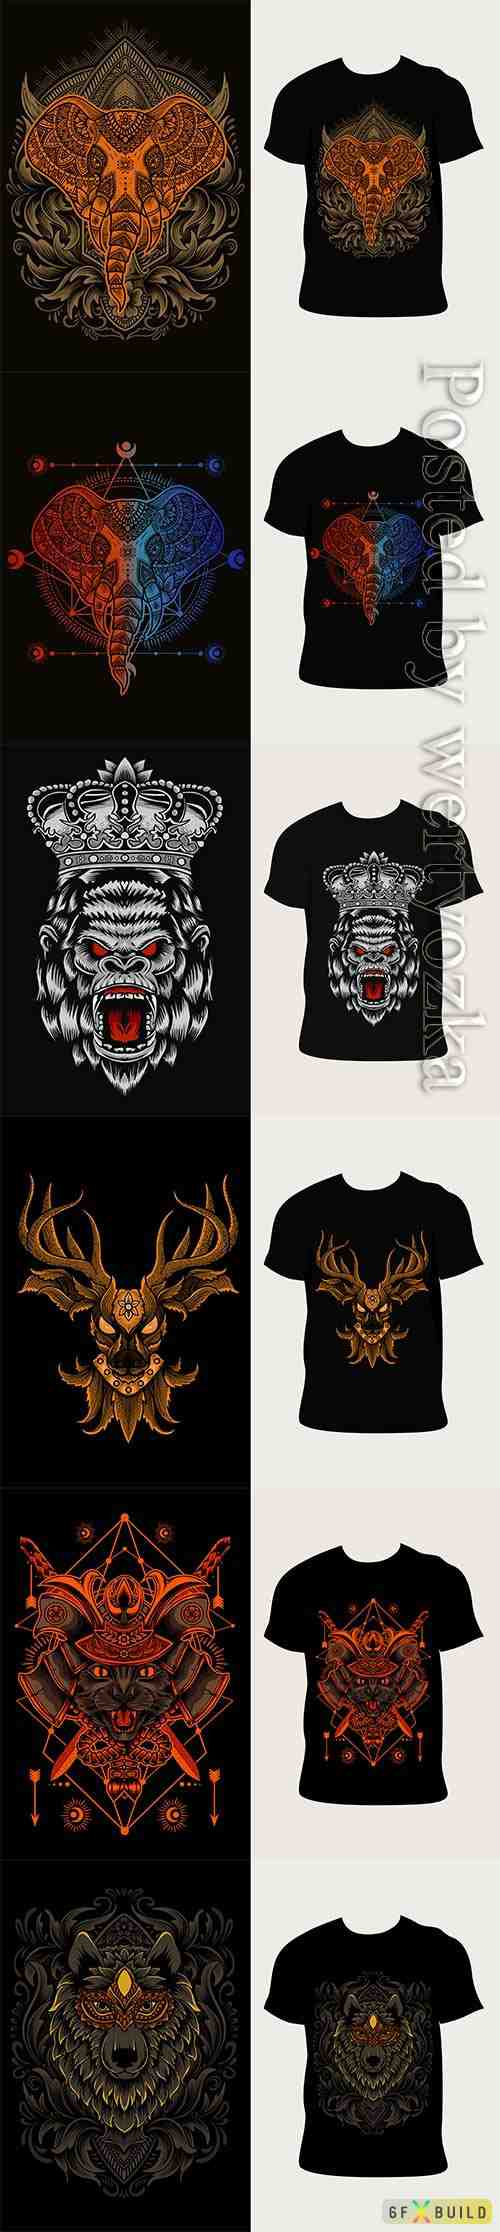 Vector illustration with t-shirt design